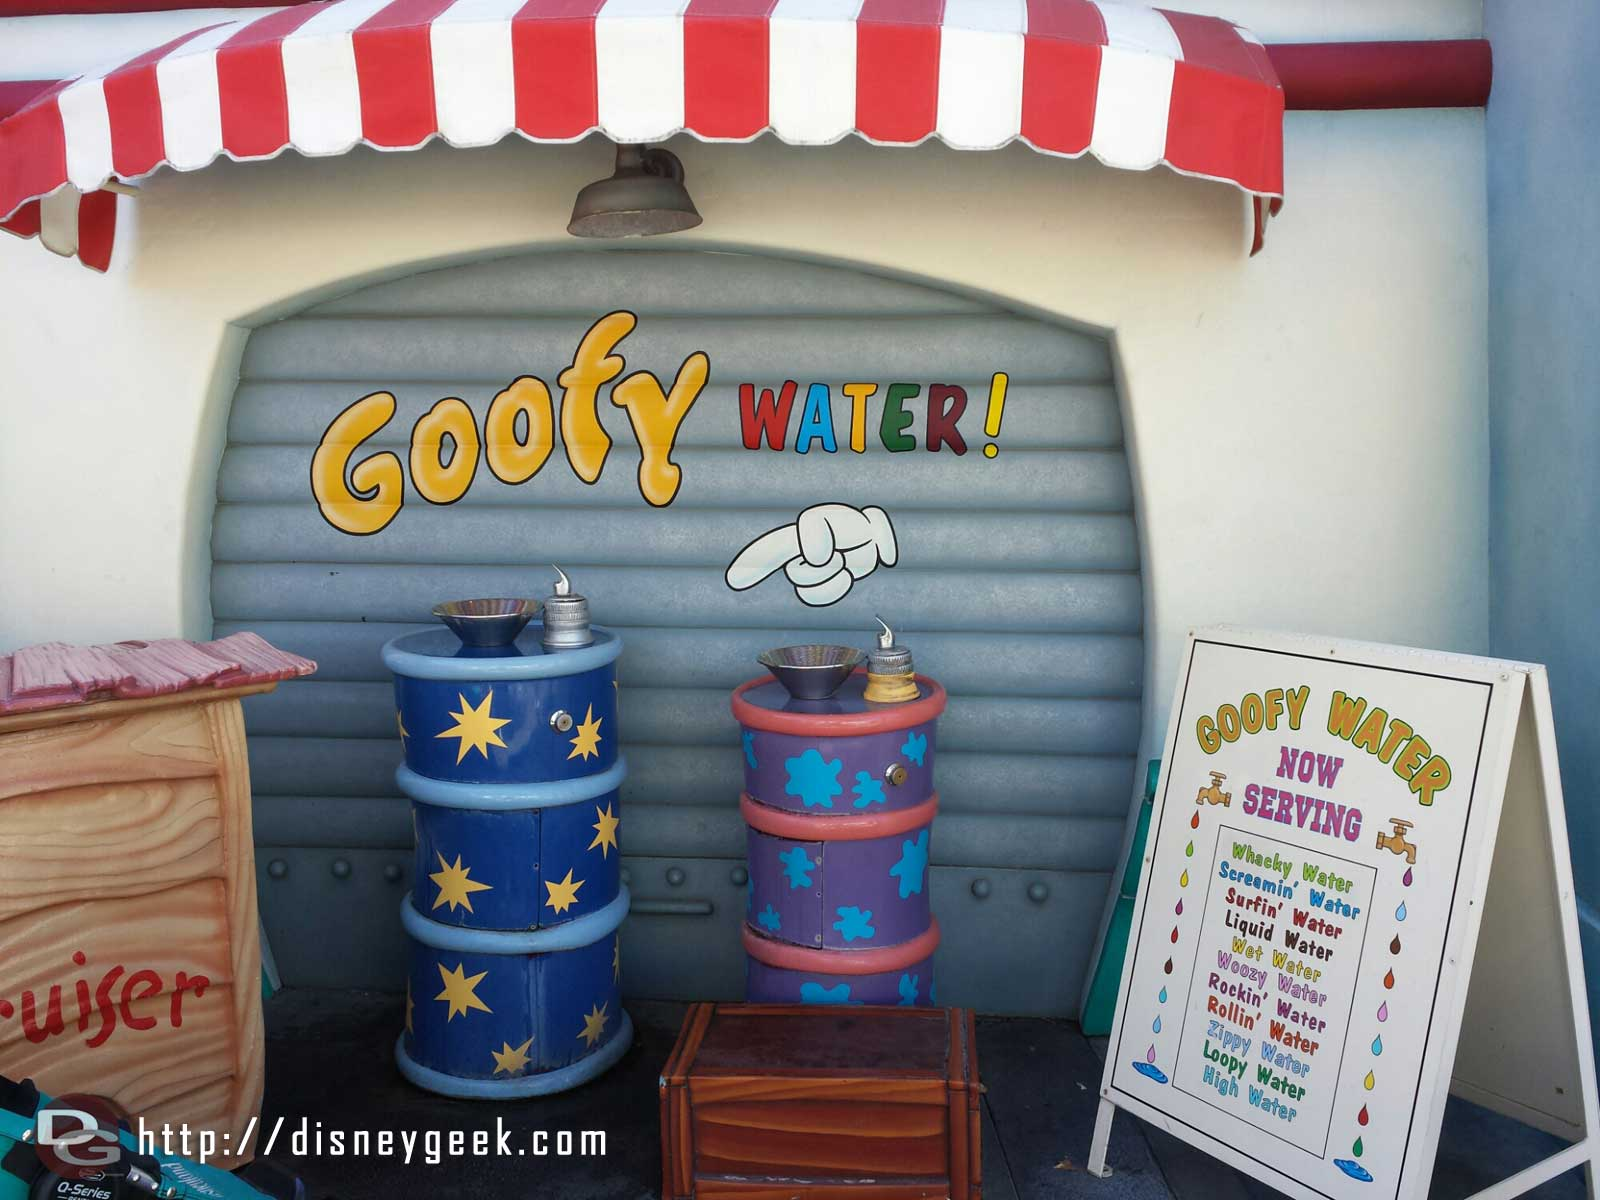 On a warm day in the parks remember to stay hydrated.  Goofy Water is among the coolest drinking fountains in the parks